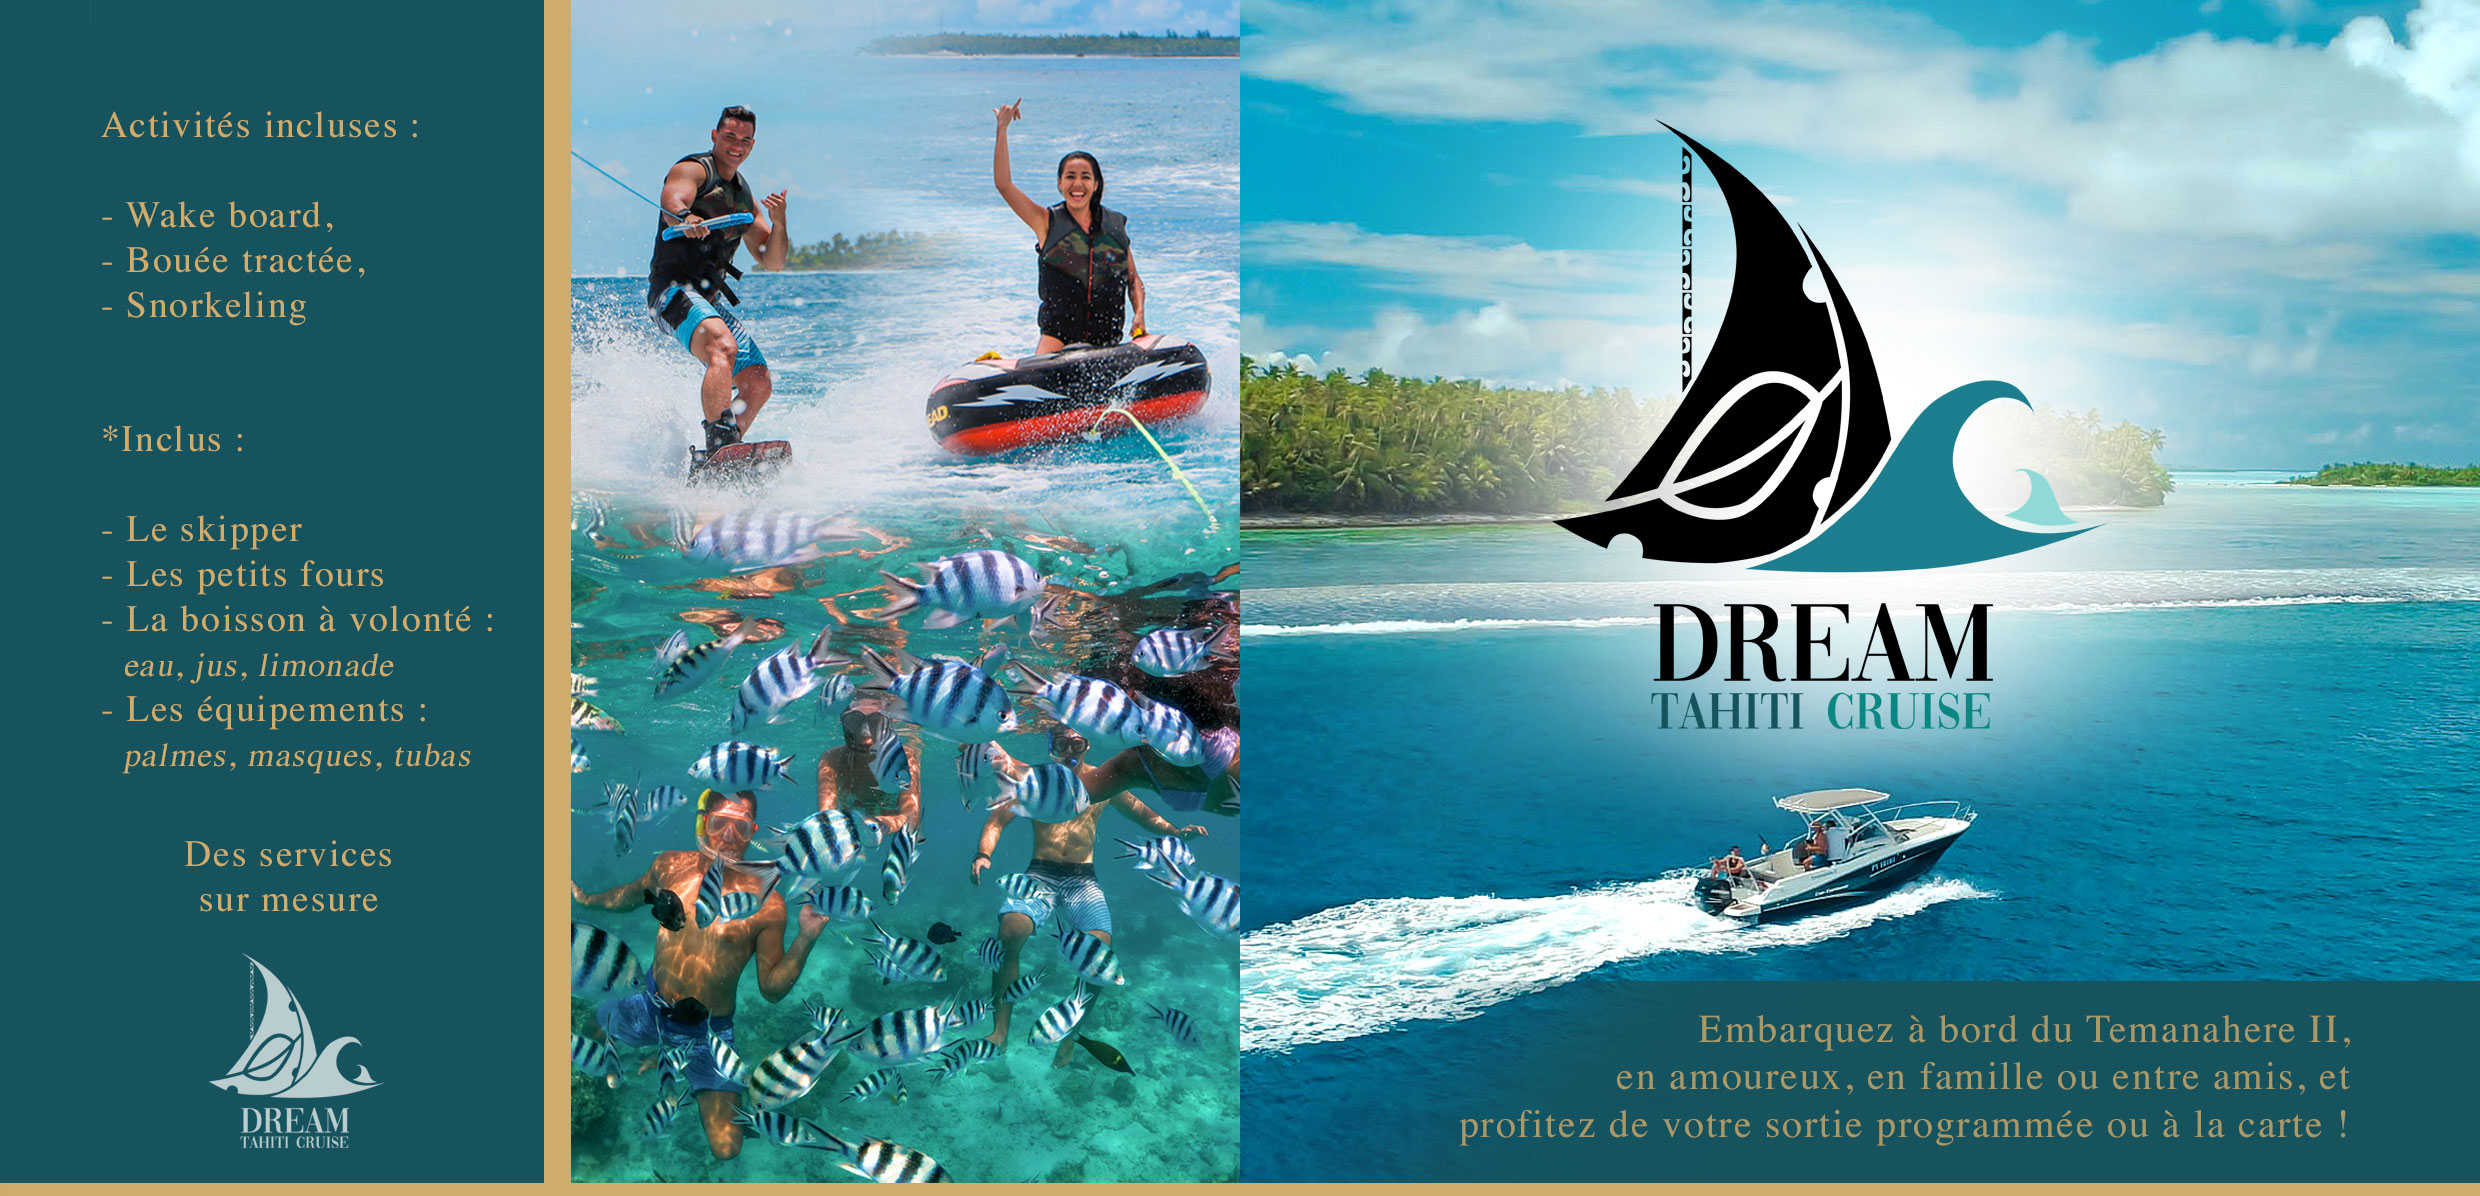 https://tahititourisme.com/wp-content/uploads/2019/06/68f6150b8766-DREAM_TAHITI_CRUISE_FLYER1140x550px.jpg